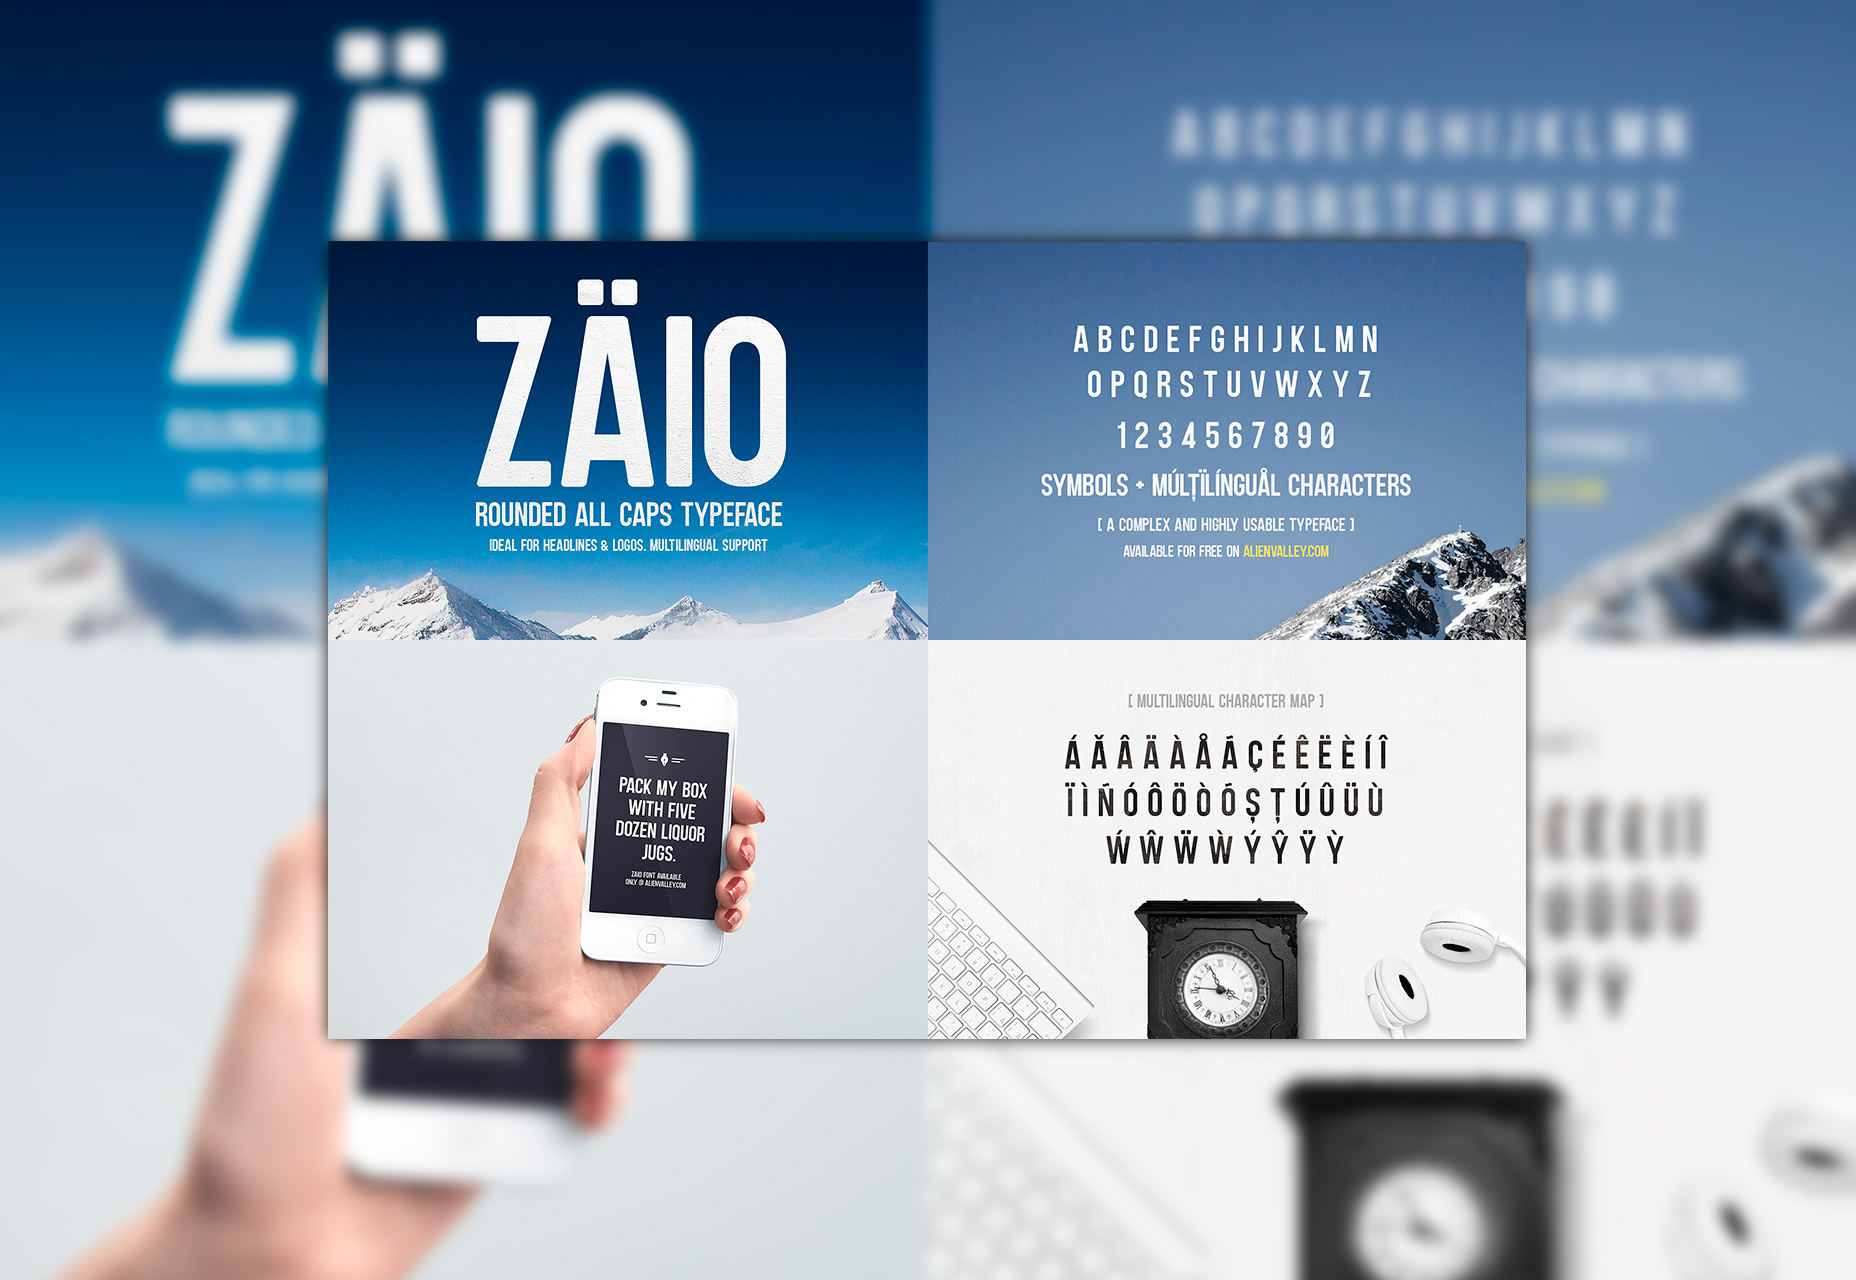 zaio-rounded-corners-uppercase-font